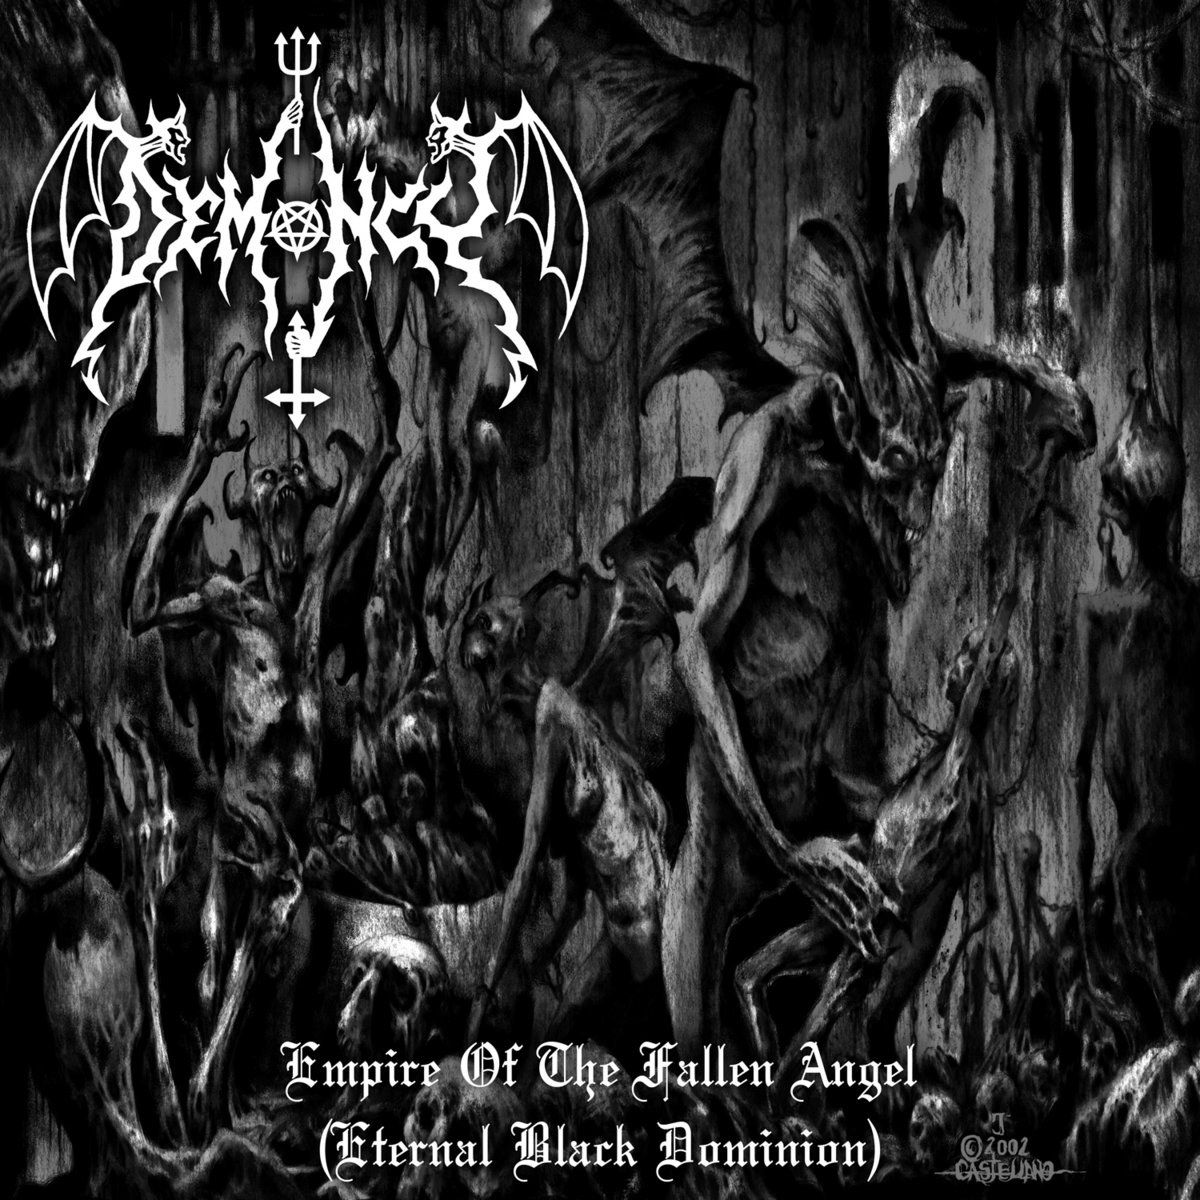 Review for Demoncy - Empire of the Fallen Angel